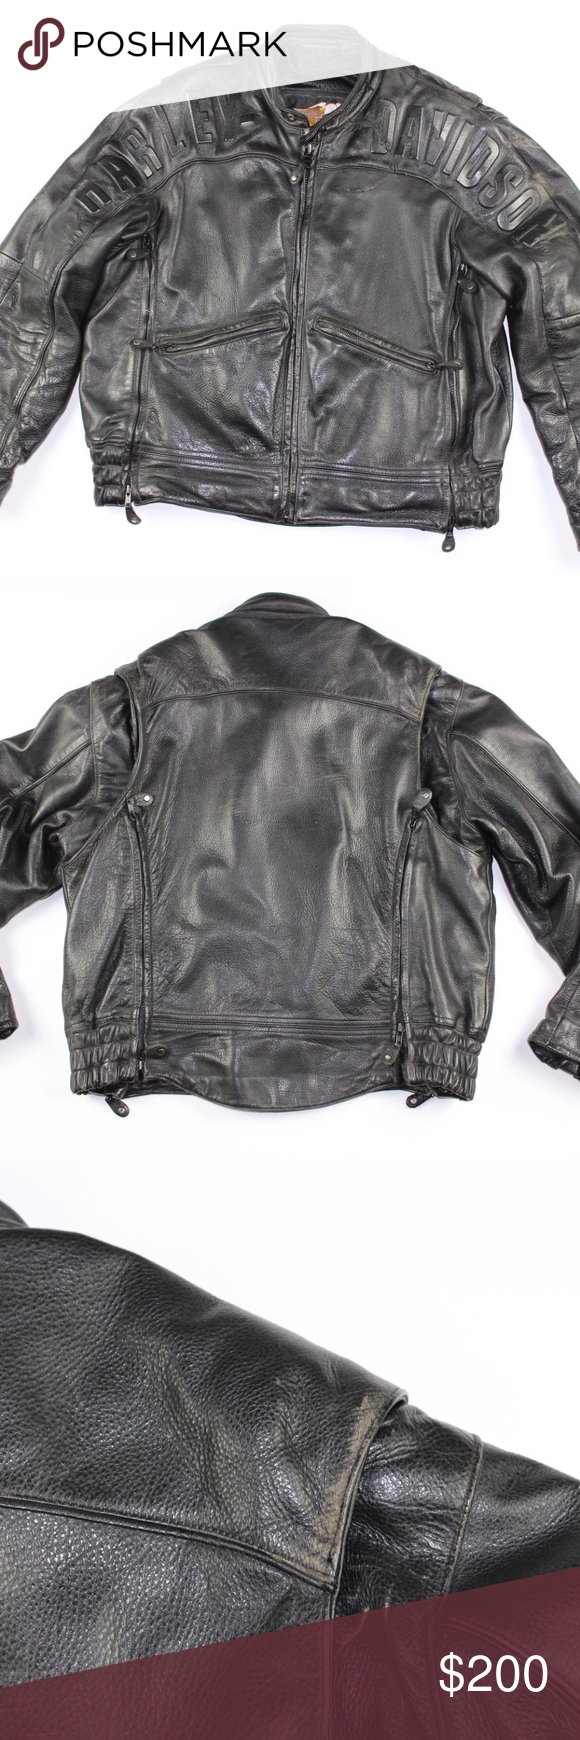 Vintage Harley Davidson Leather Motorcycle Jacket Vintage